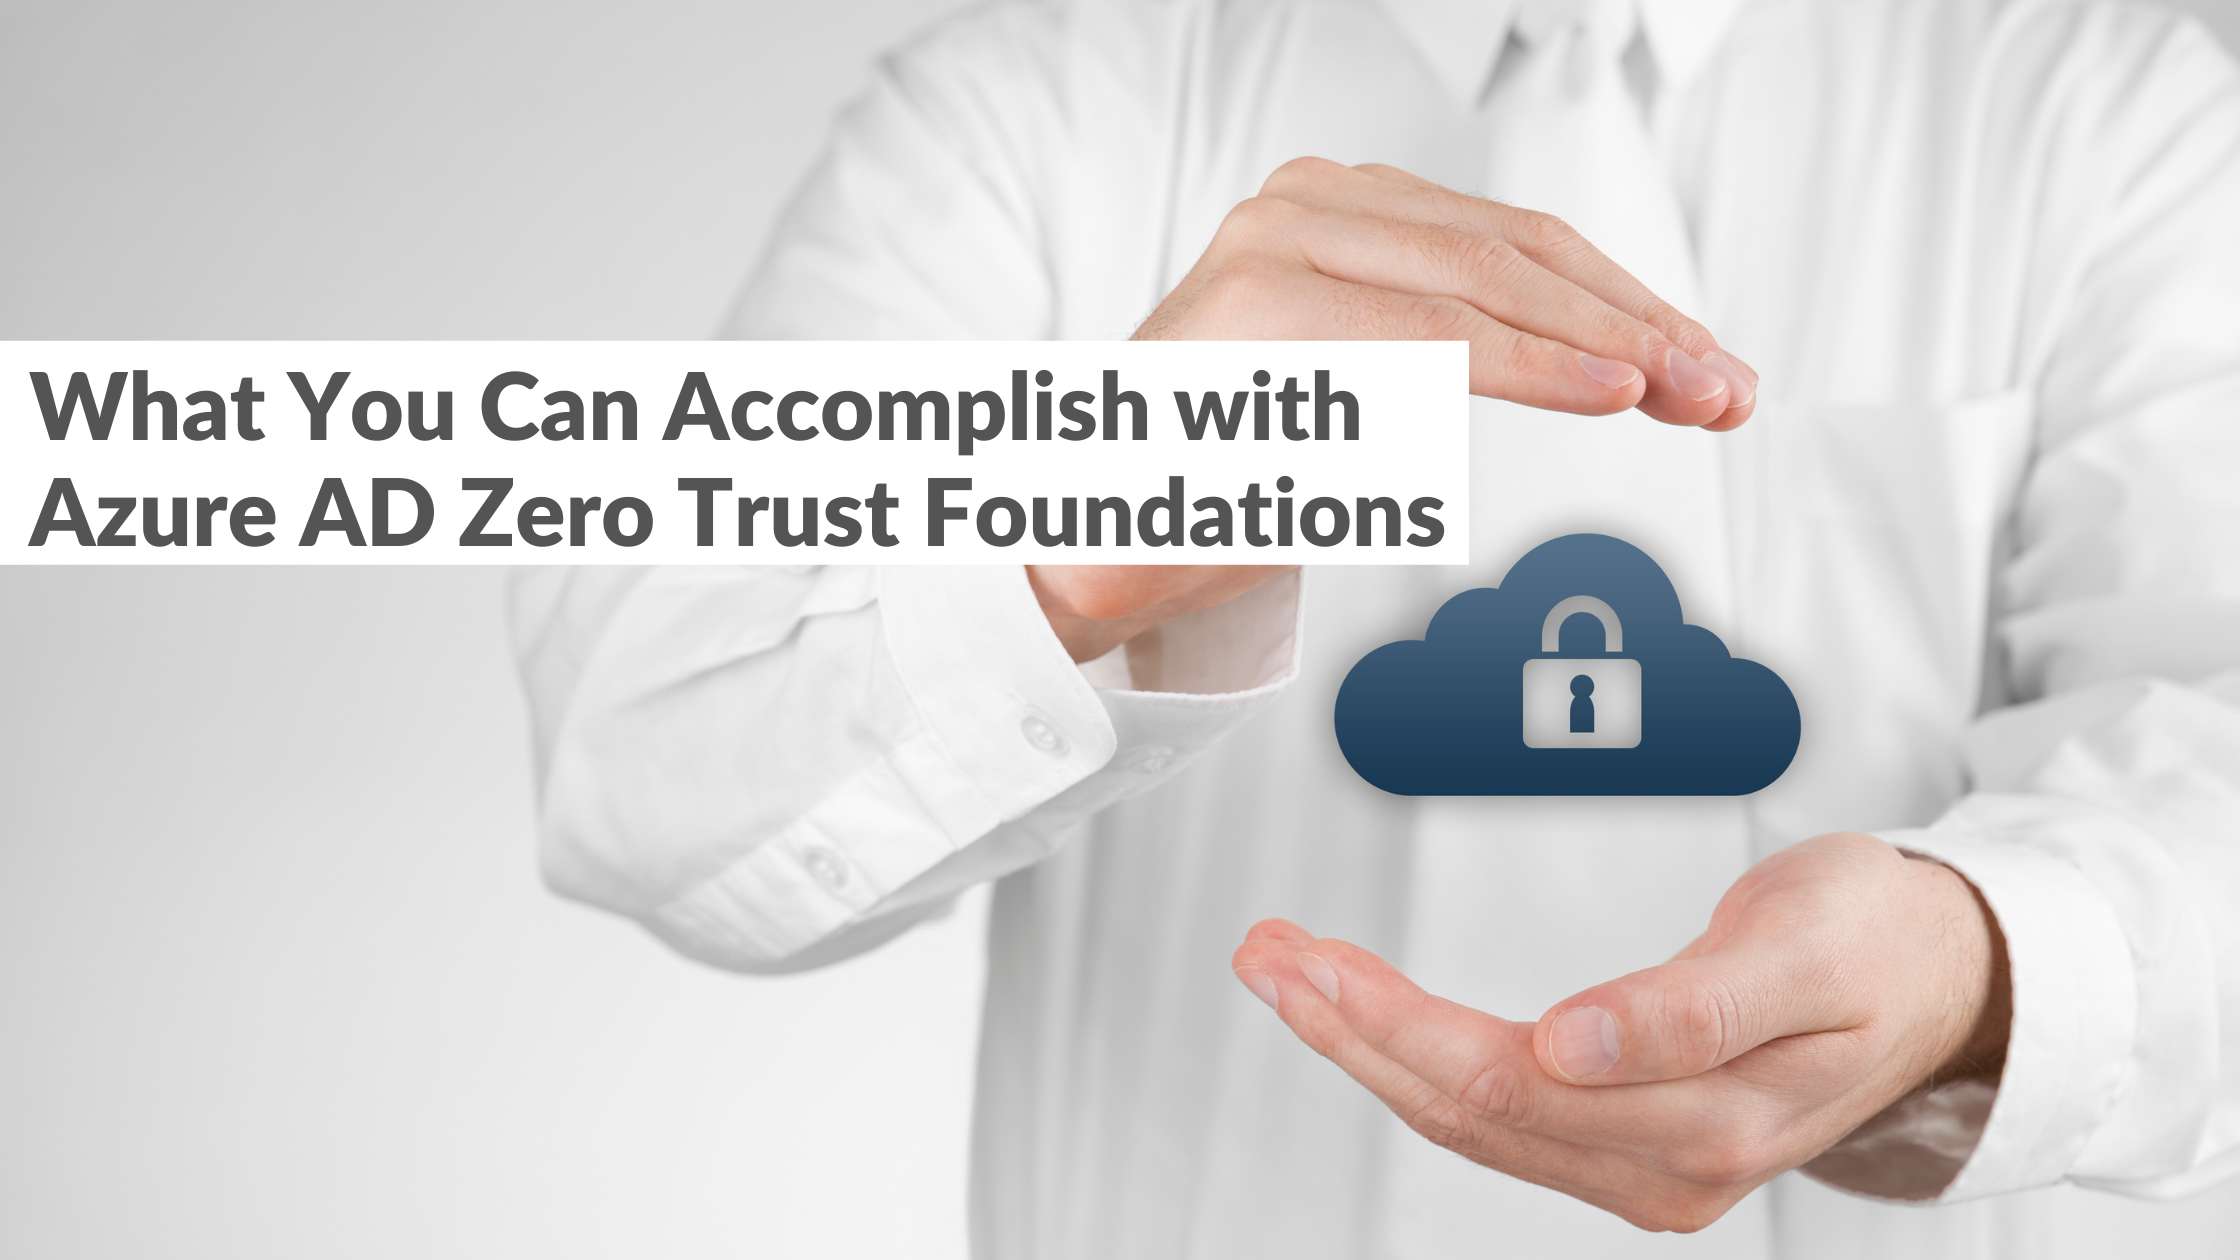 What Can You Accomplish with Azure AD Zero Trust Foundations